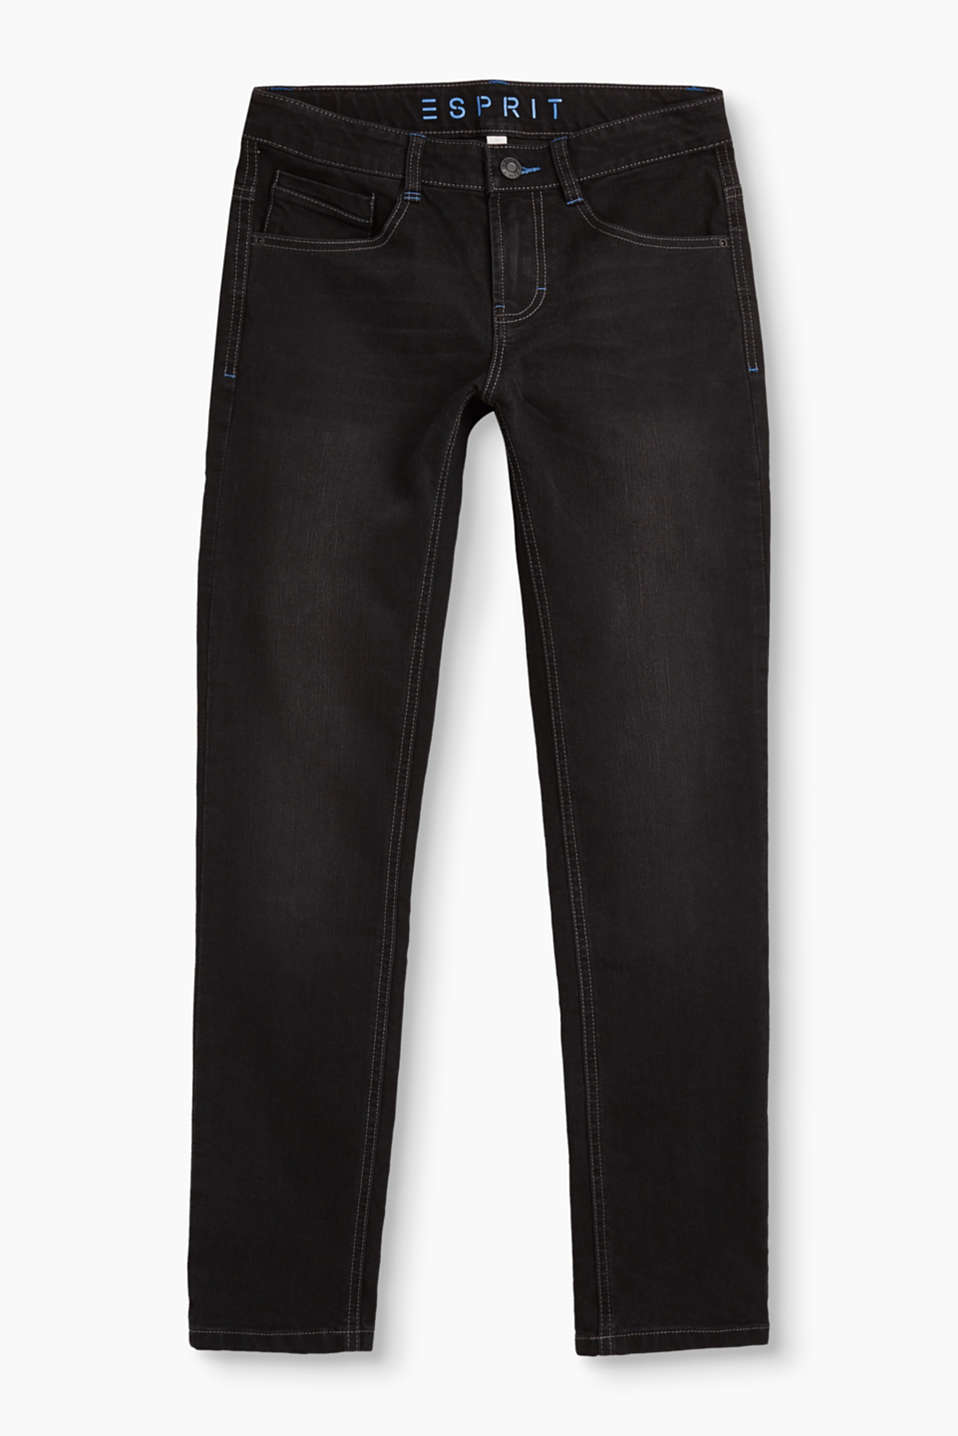 Esprit - Black jeans with contrasting stitching